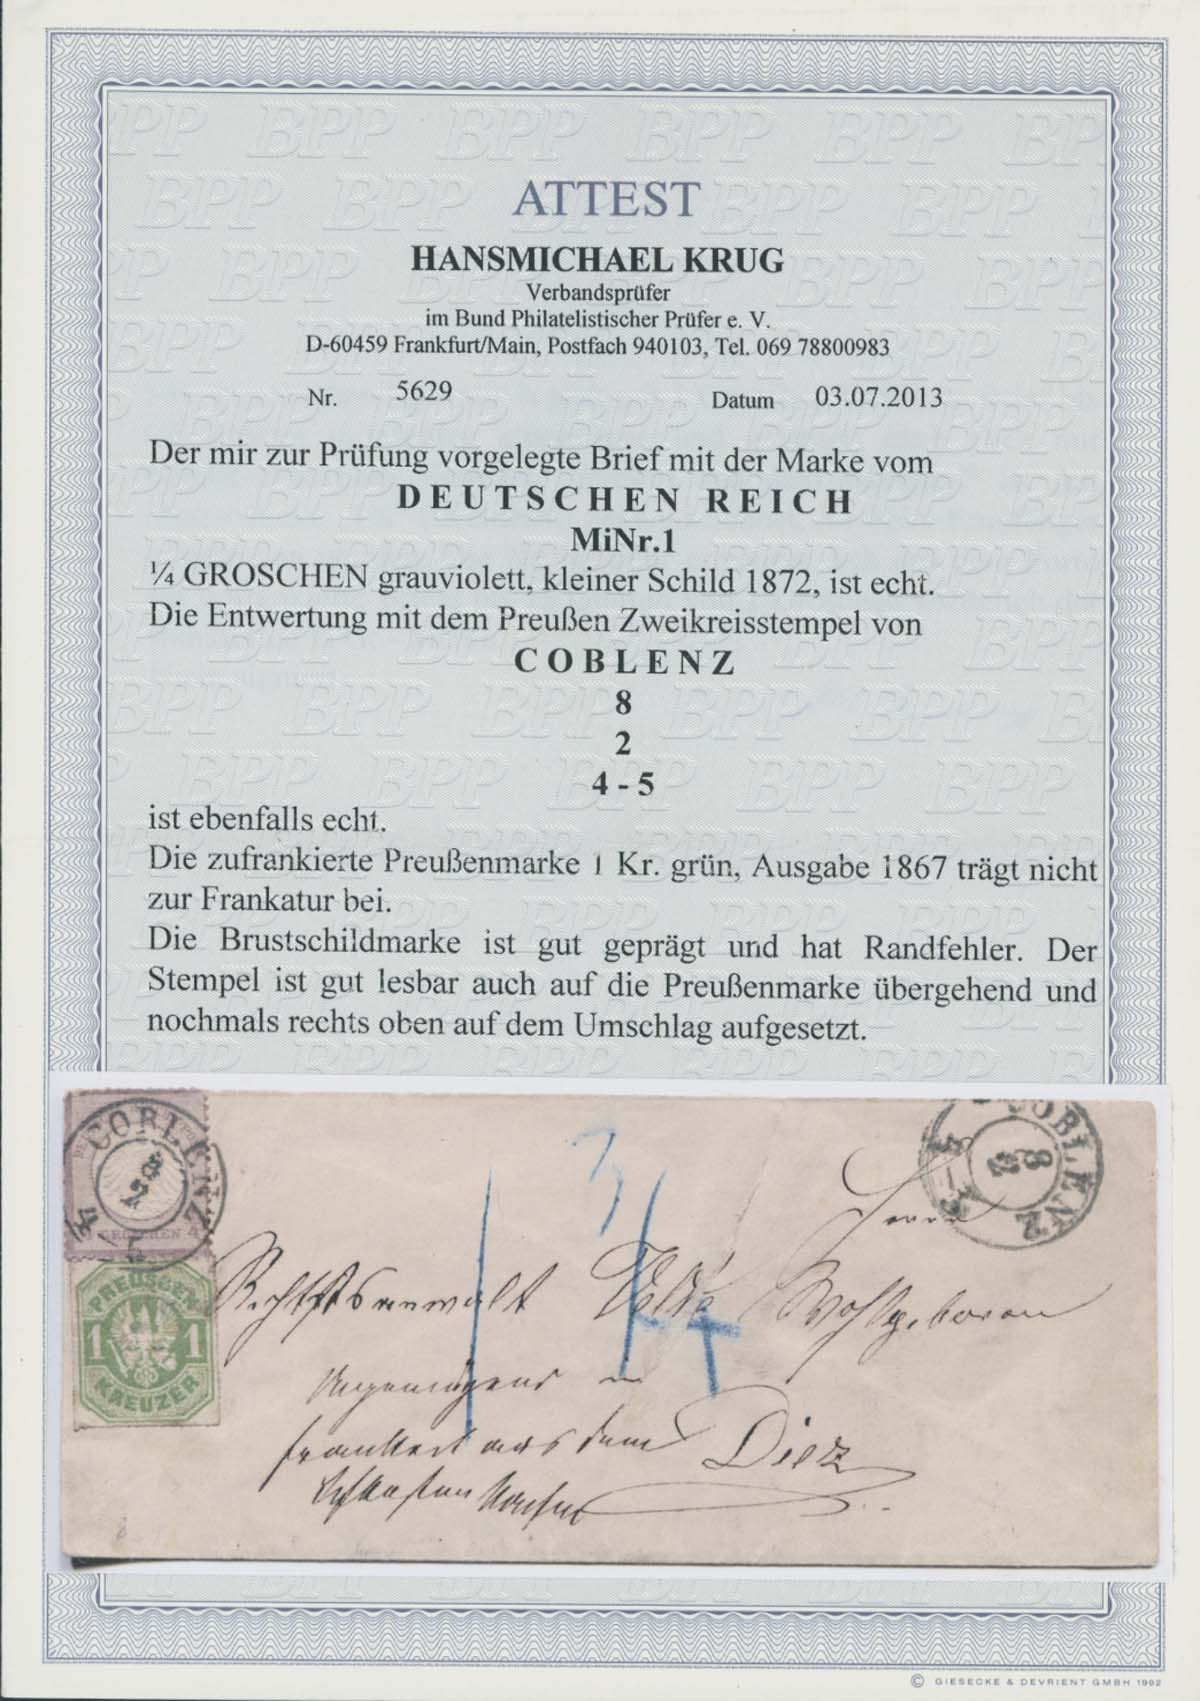 Lot 4190 - Deutsches Reich_Brustschilde  -  Auktionshaus Ulrich Felzmann GmbH & Co. KG Auction 170 International Autumn Auction 2020 Day 4